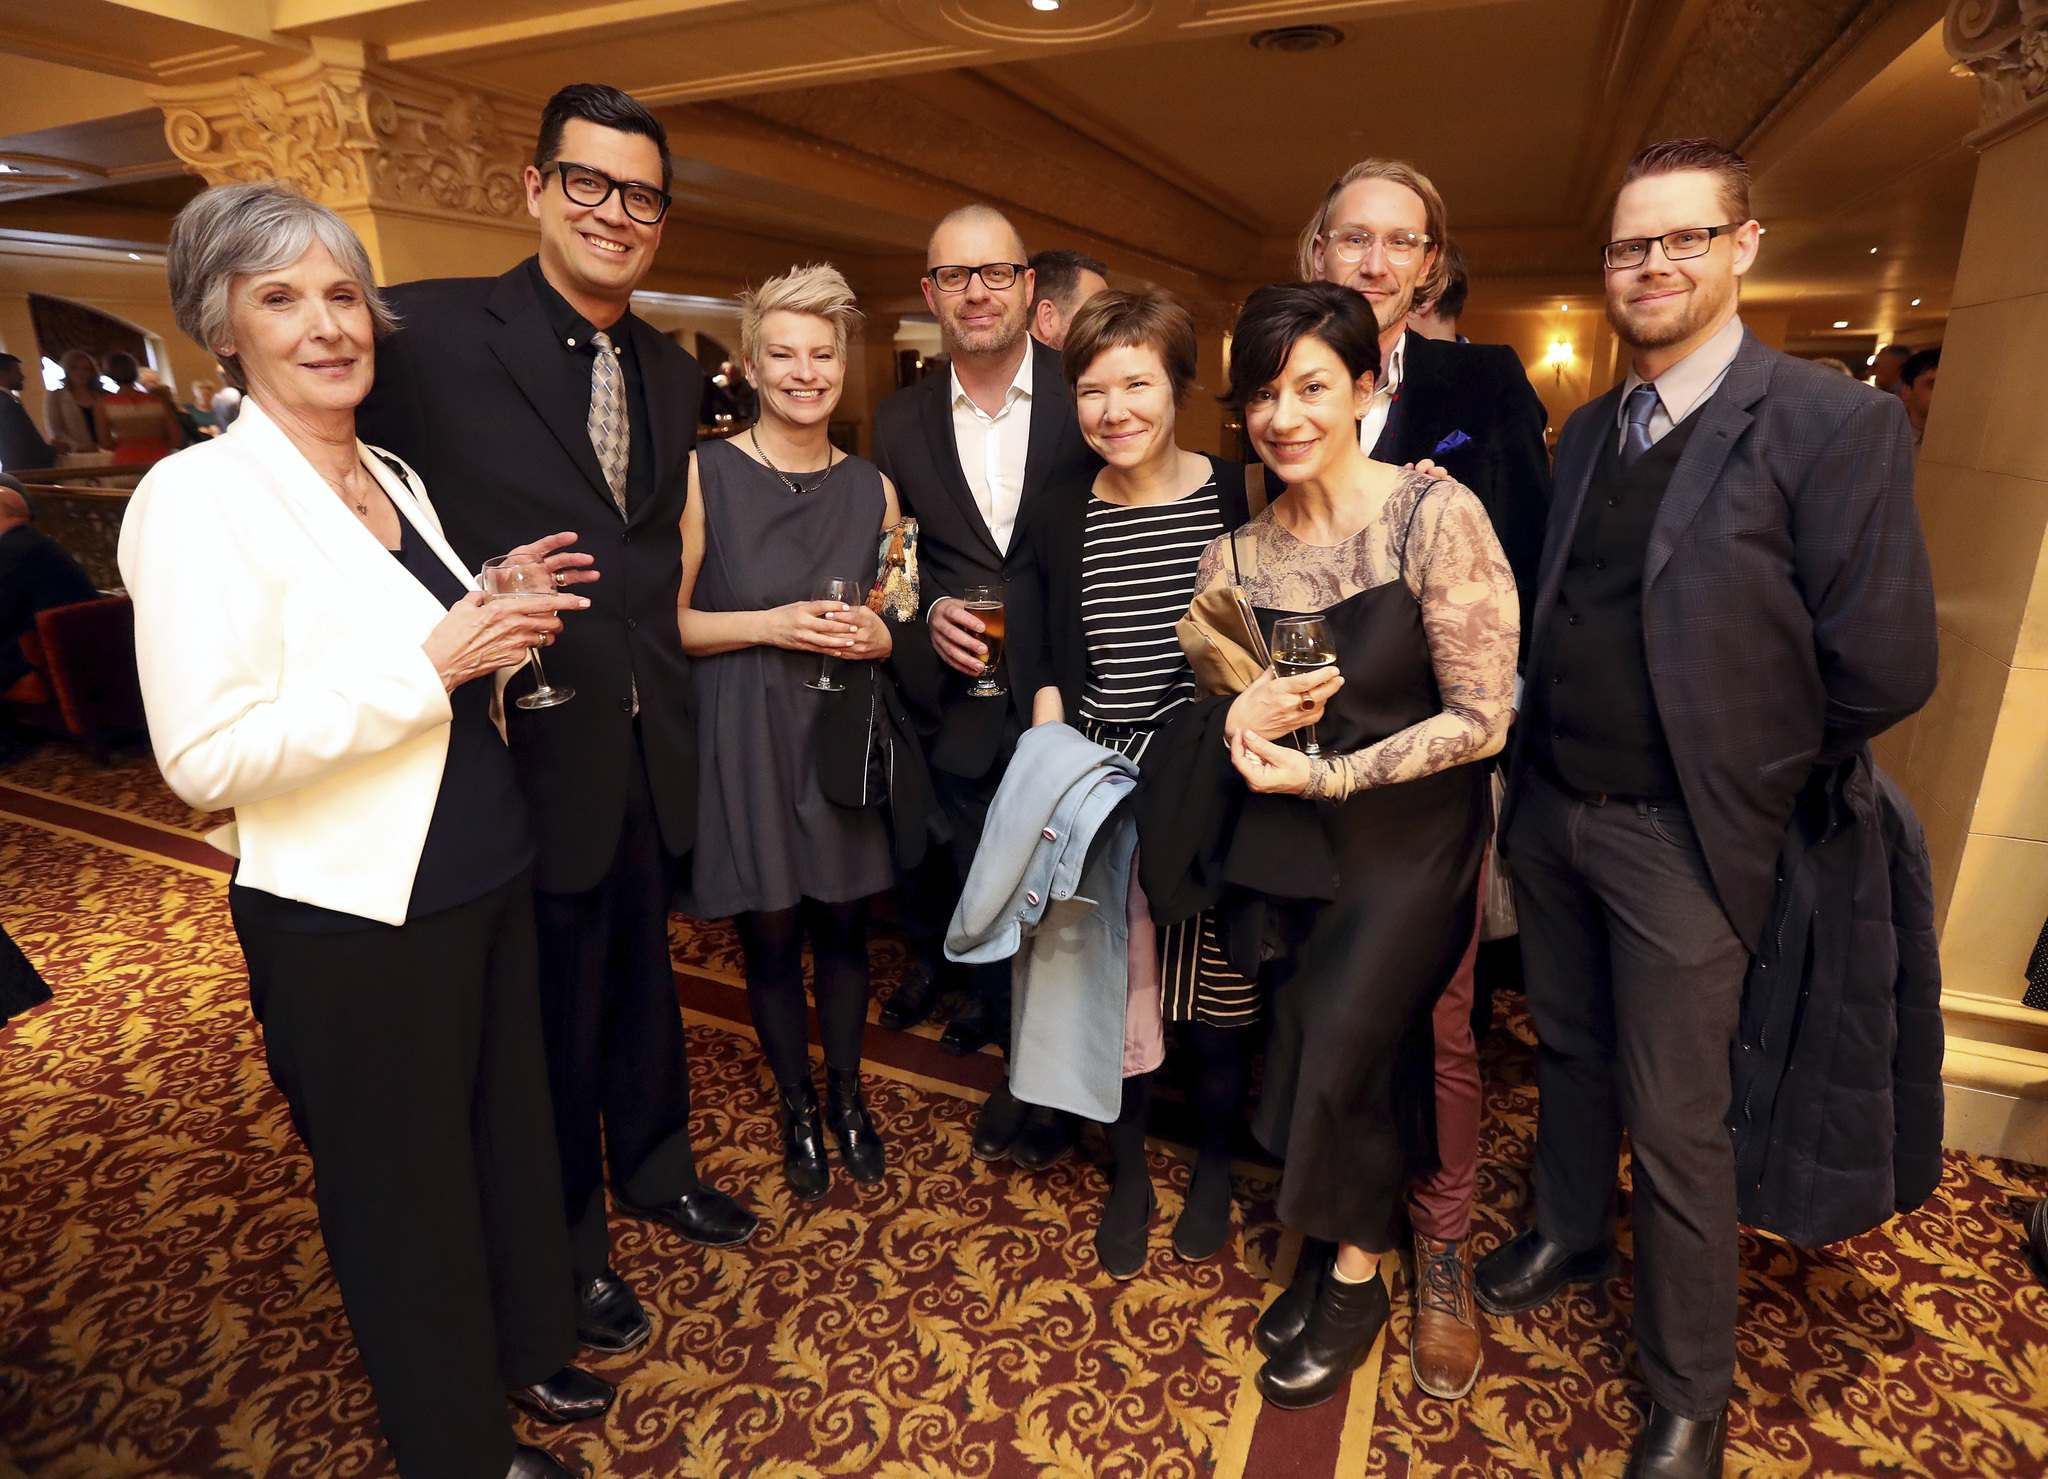 <p>David Alexander Robertson, second from left, and GMB Chomichuk, second from right, at the Manitoba Book Awards, Saturday.</p>